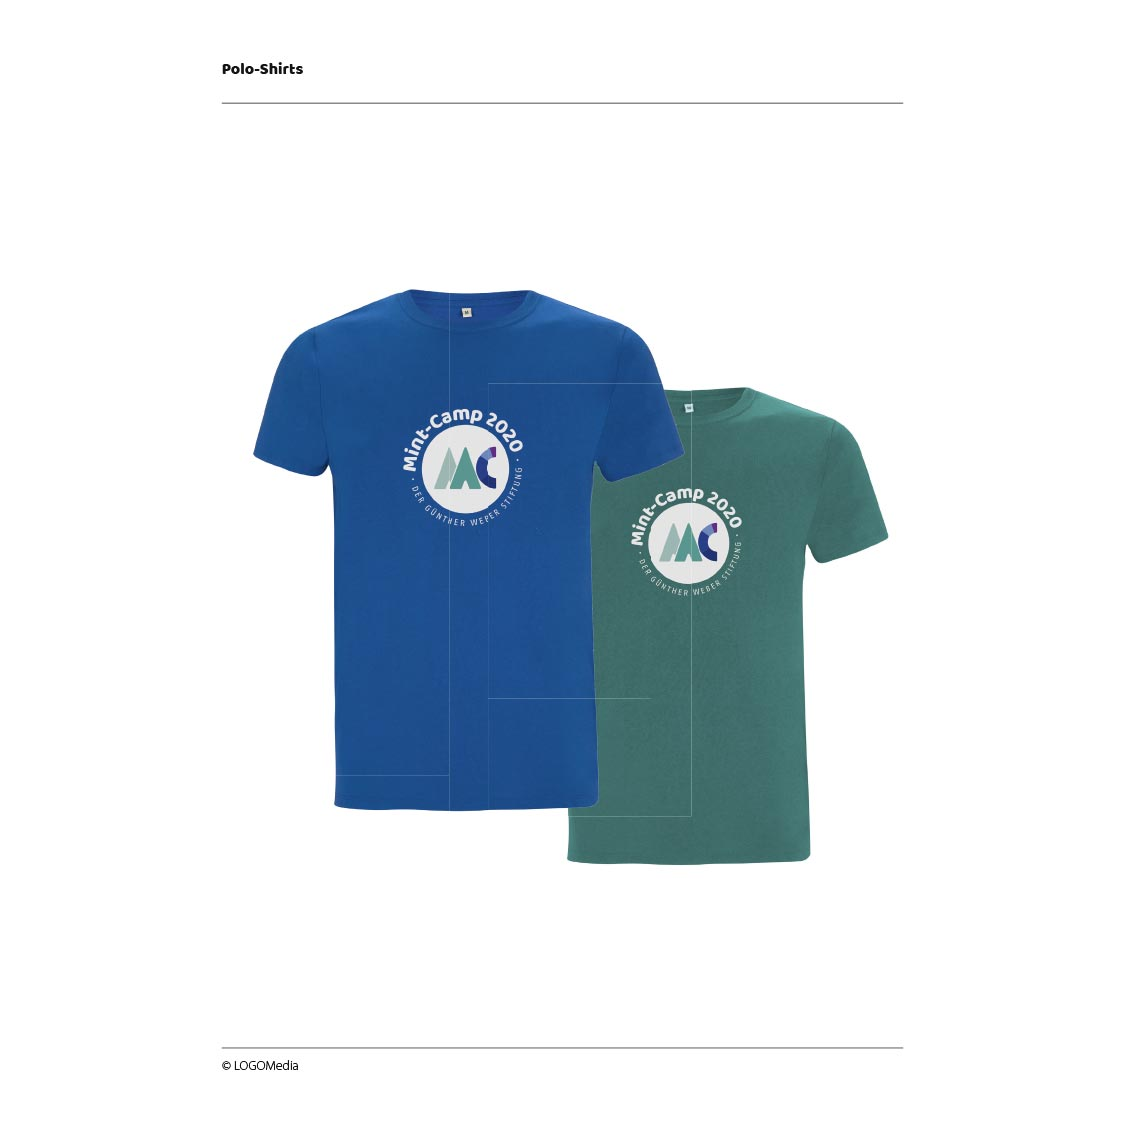 05 logo mint camp 2020 t shirts 1125px